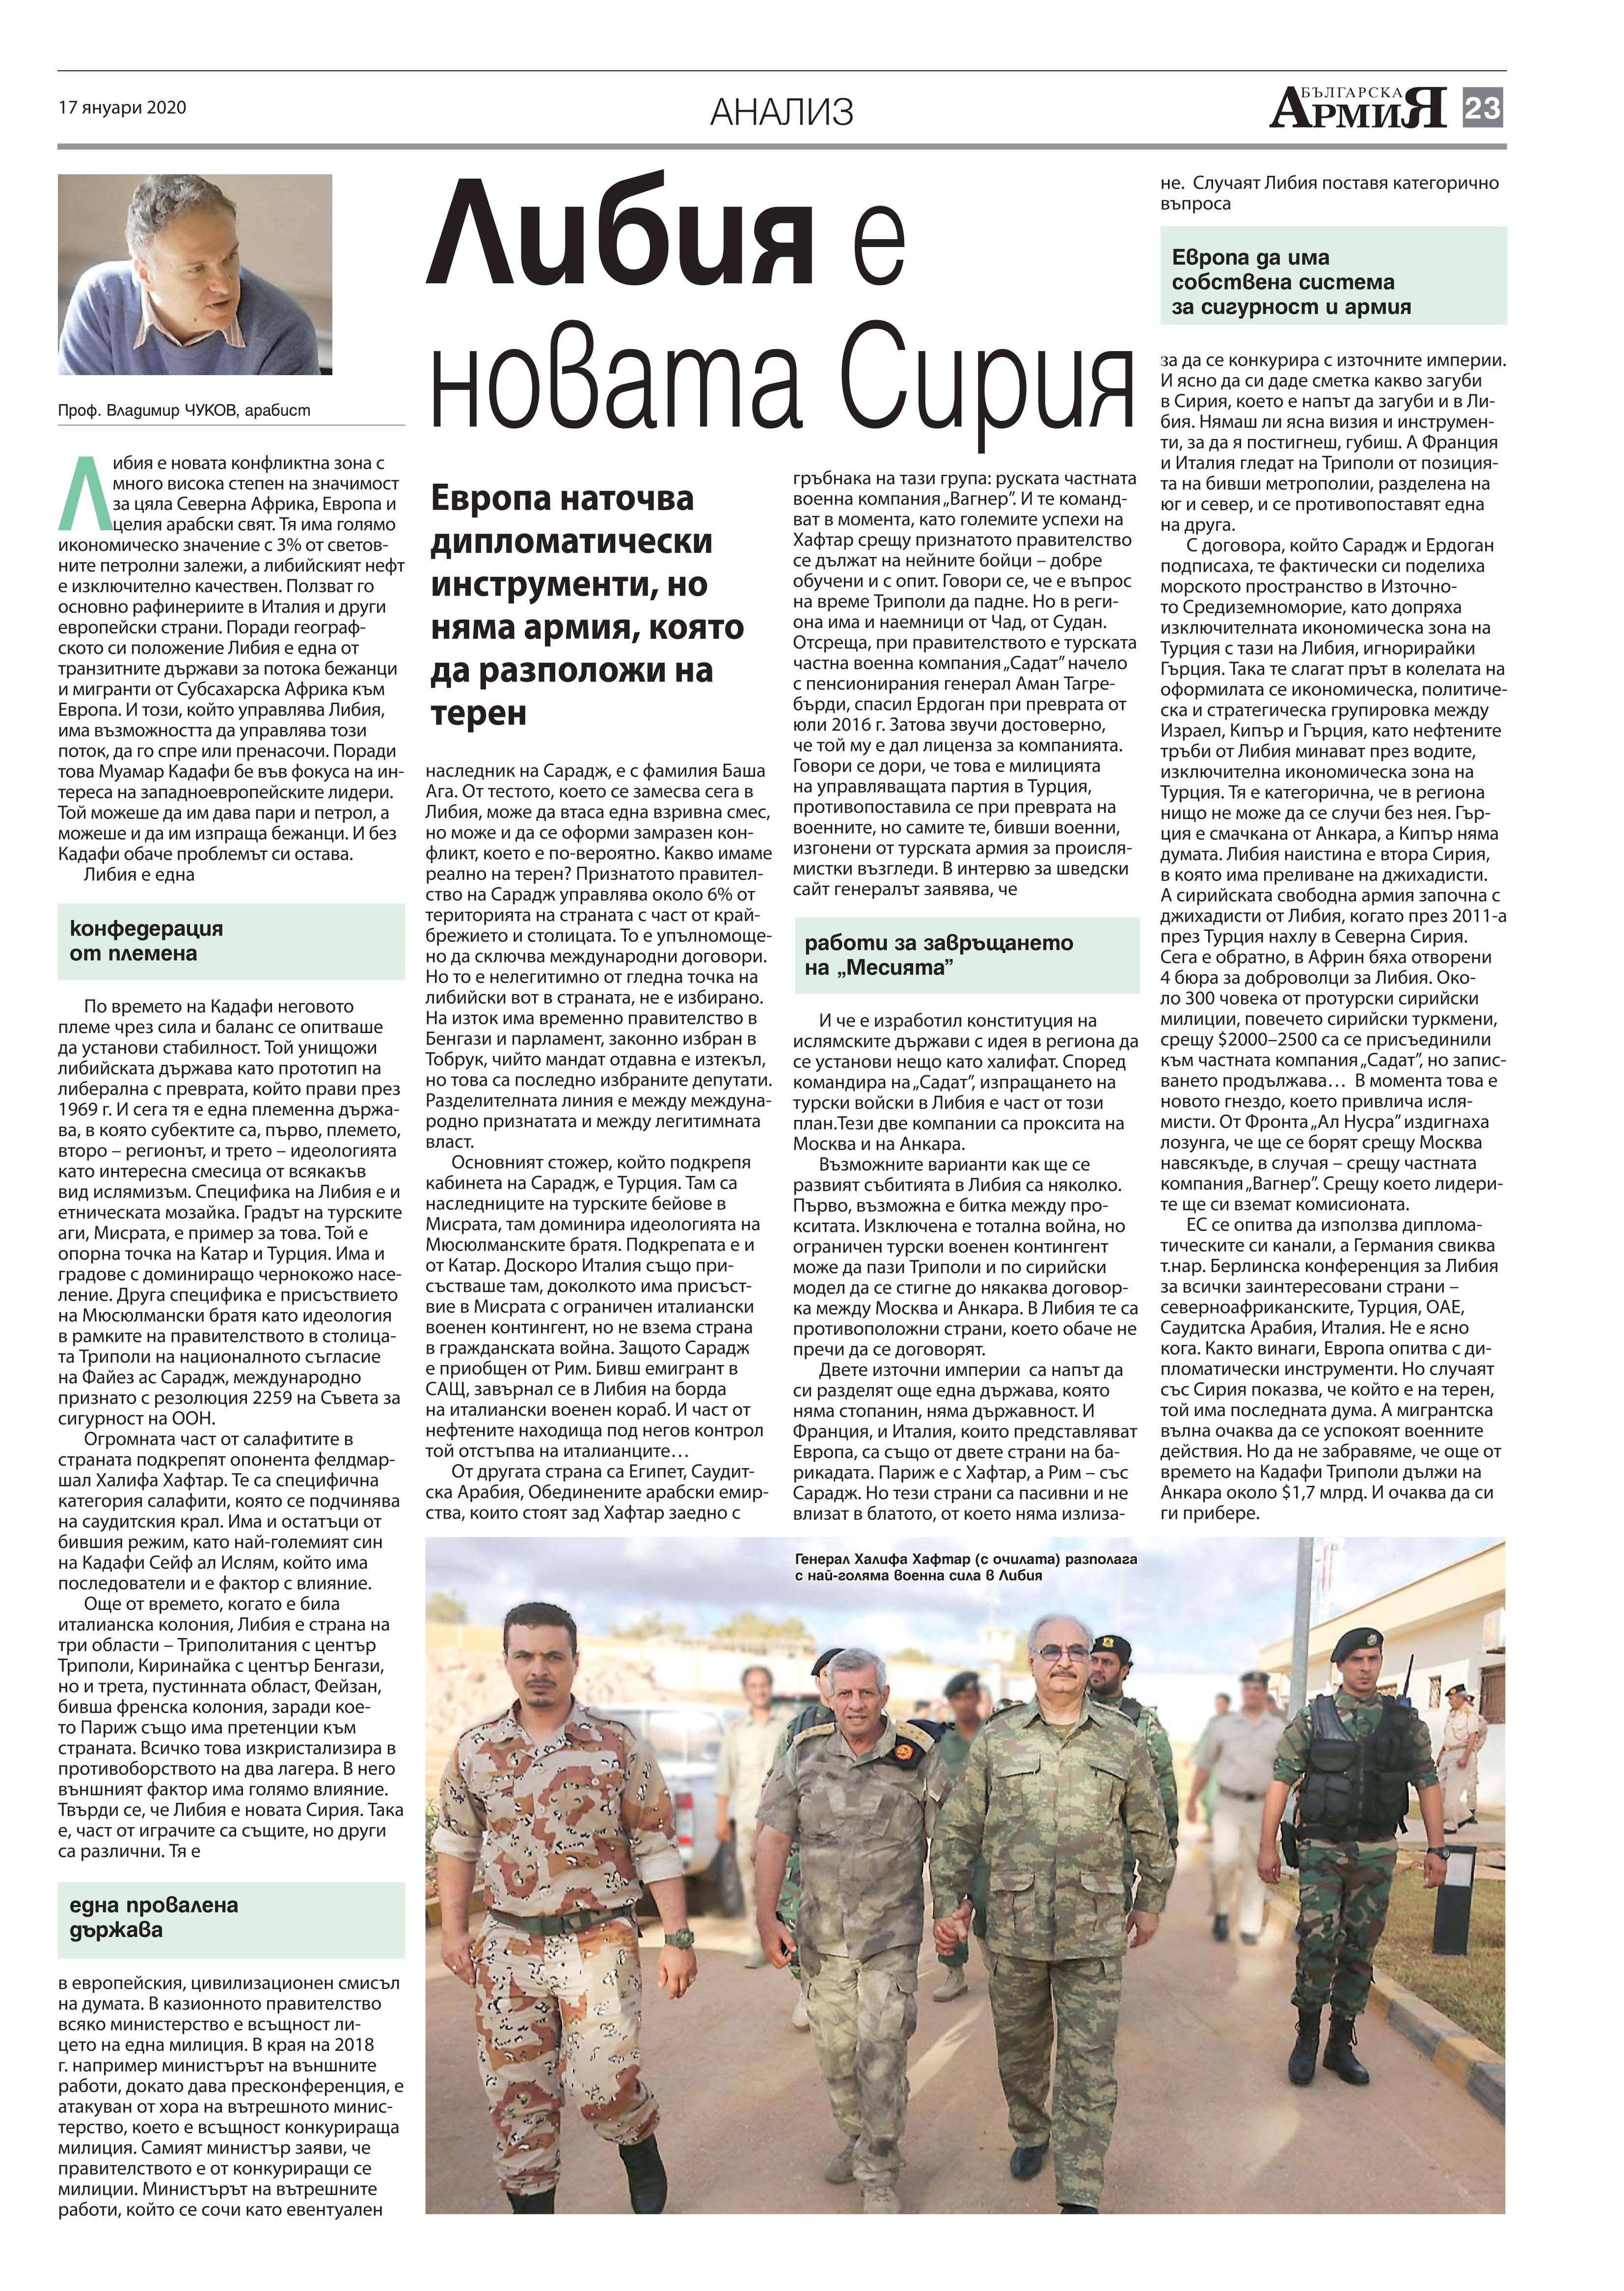 https://armymedia.bg/wp-content/uploads/2015/06/23.page1_-123.jpg